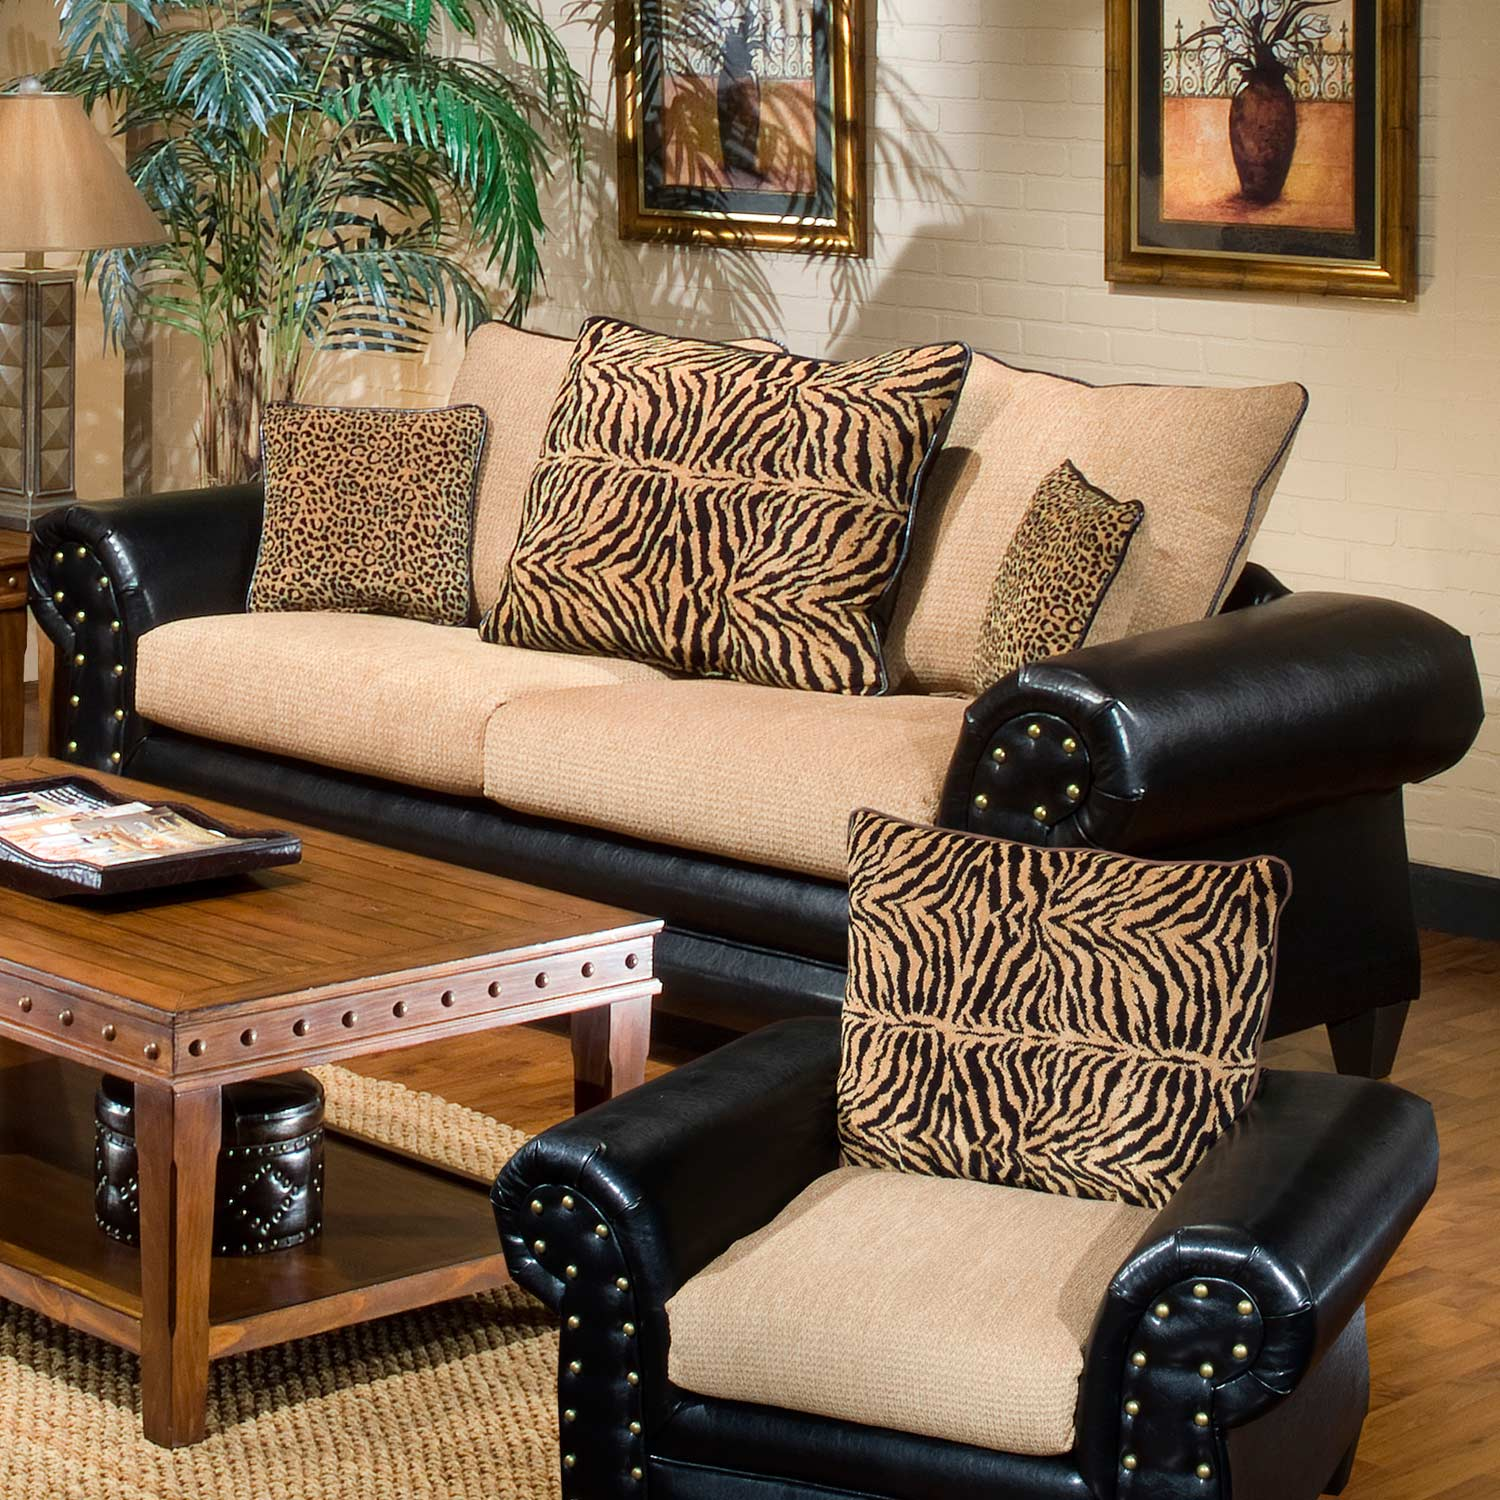 Zoie Sofa - Nail Heads, Leopard & Tiger Pattern Pillows - CHF-9950-S